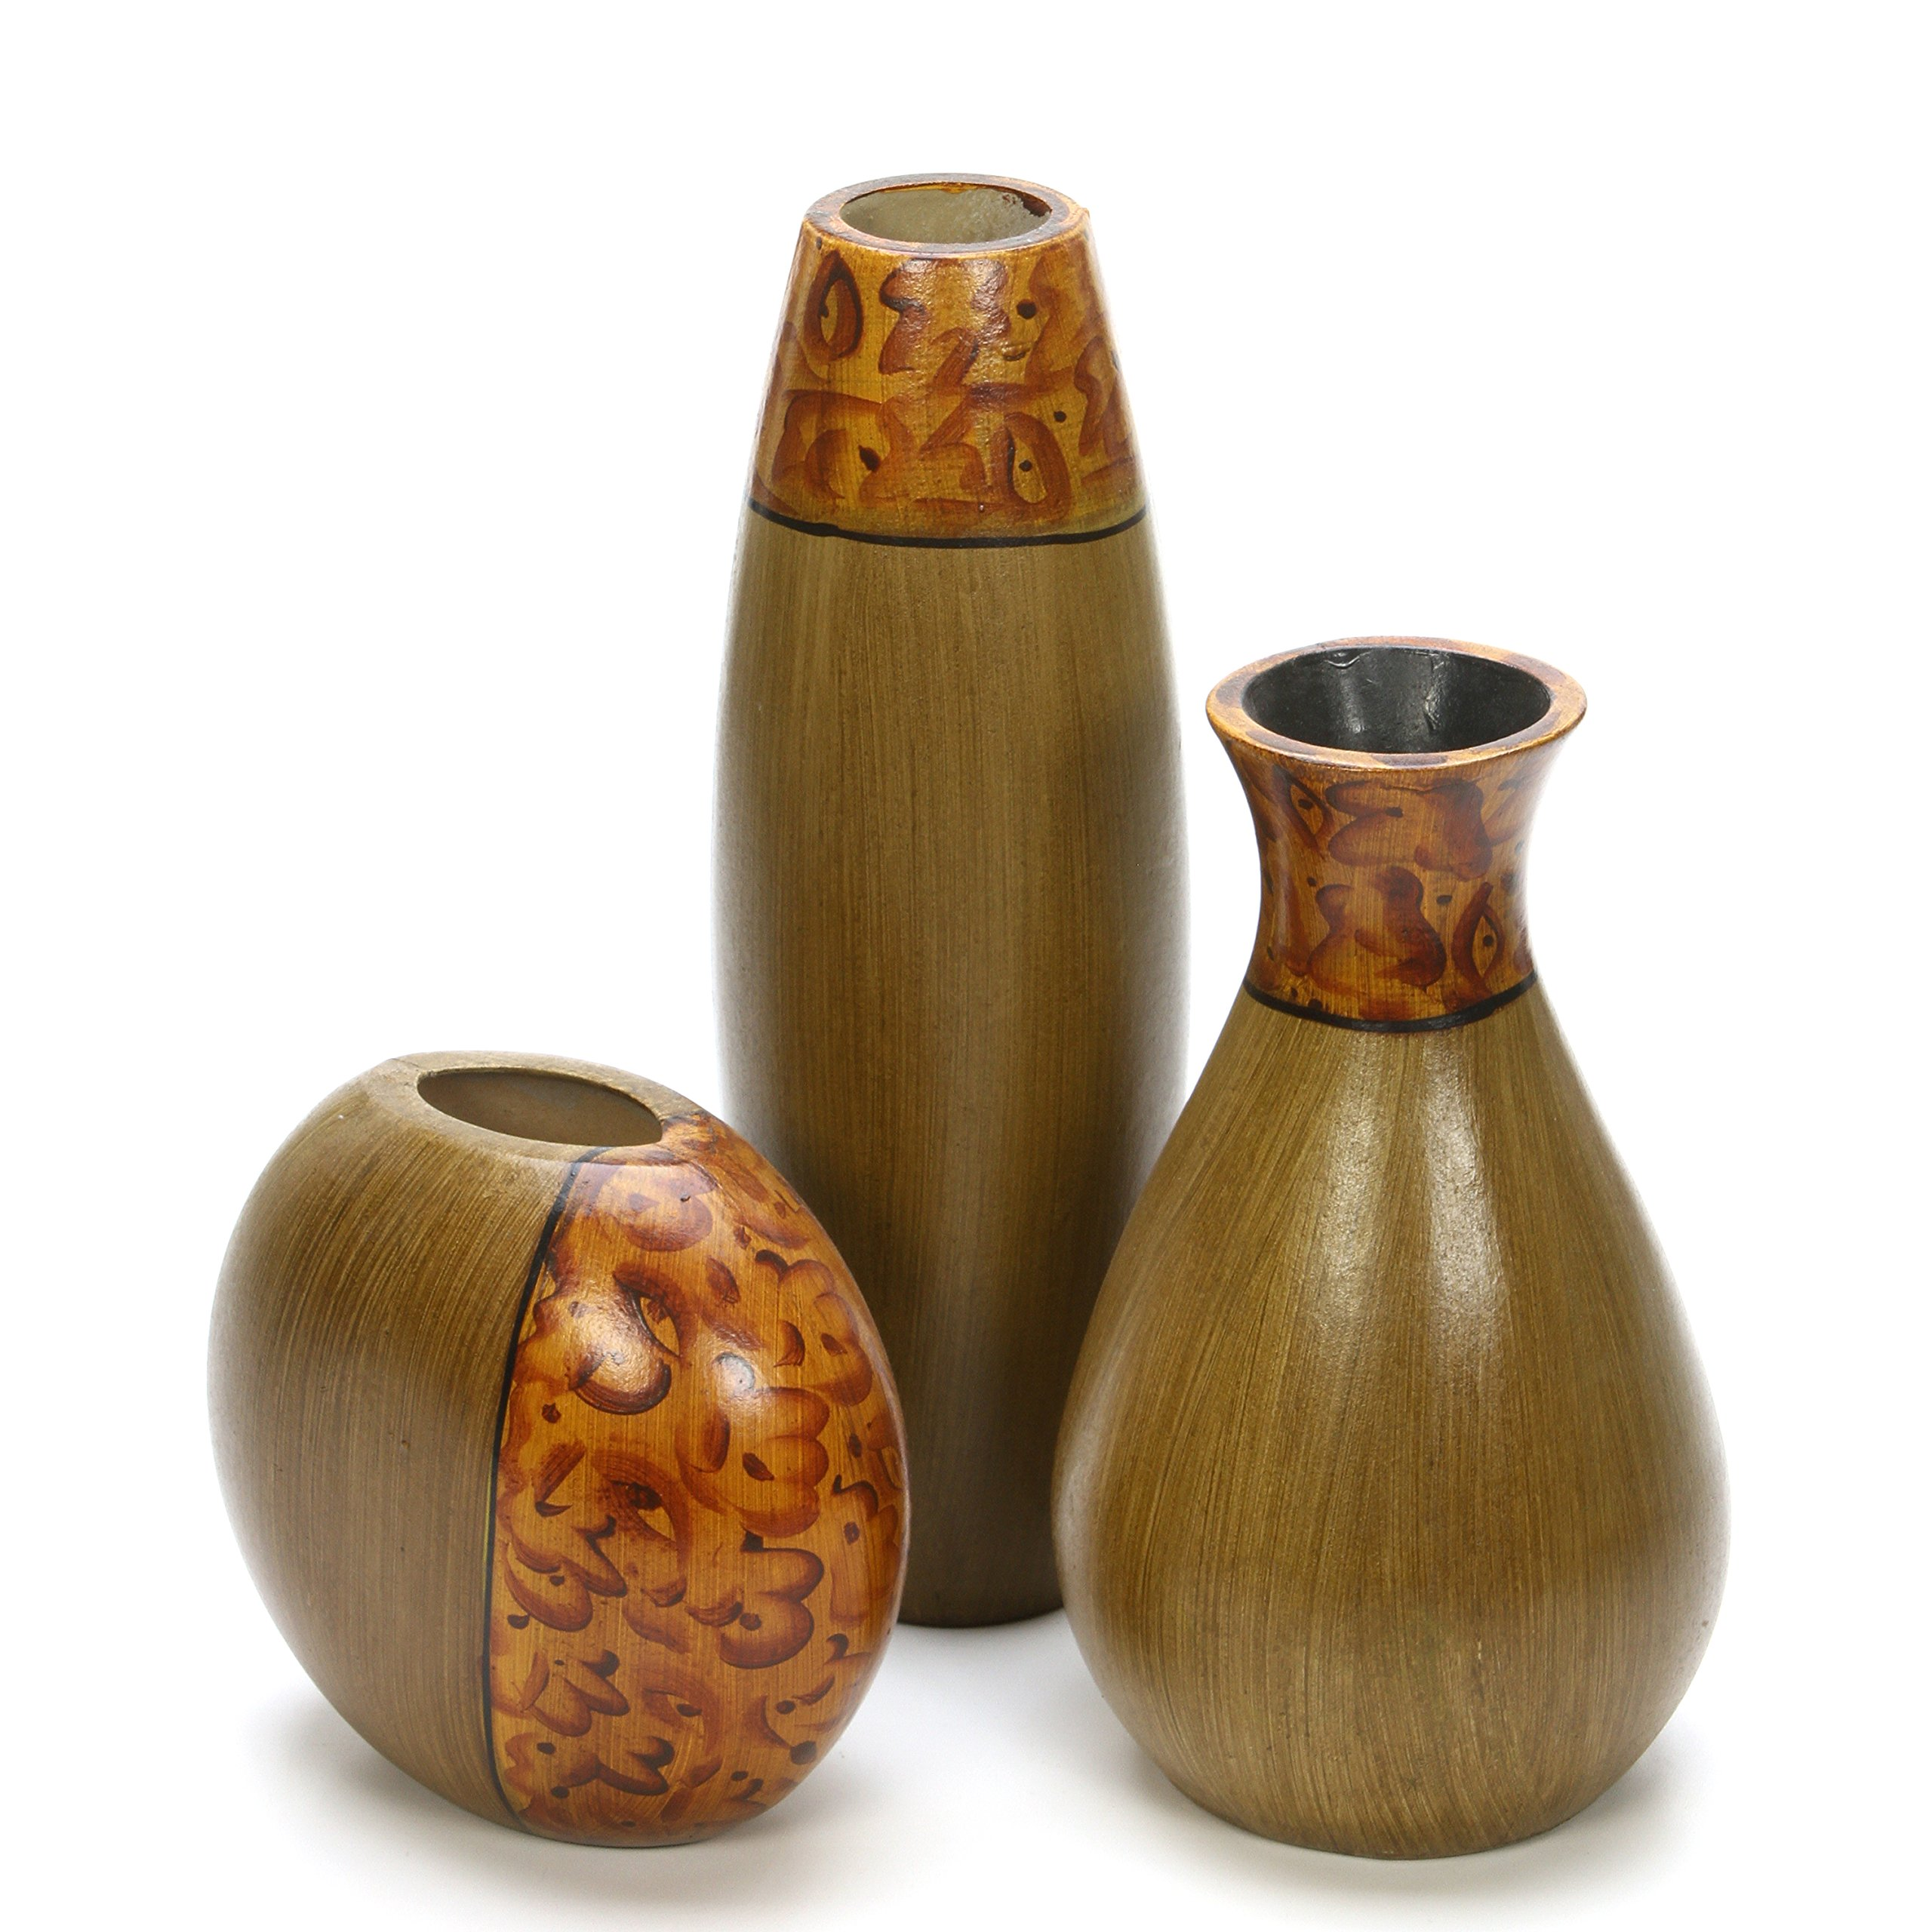 Hosley's Set of 3 Burlwood Vases. Ideal Gift for Wedding or Special Occasion and for Home Office, Decor, Floor Vases, Spa, Aromatherapy Settings O3 by Hosley (Image #6)